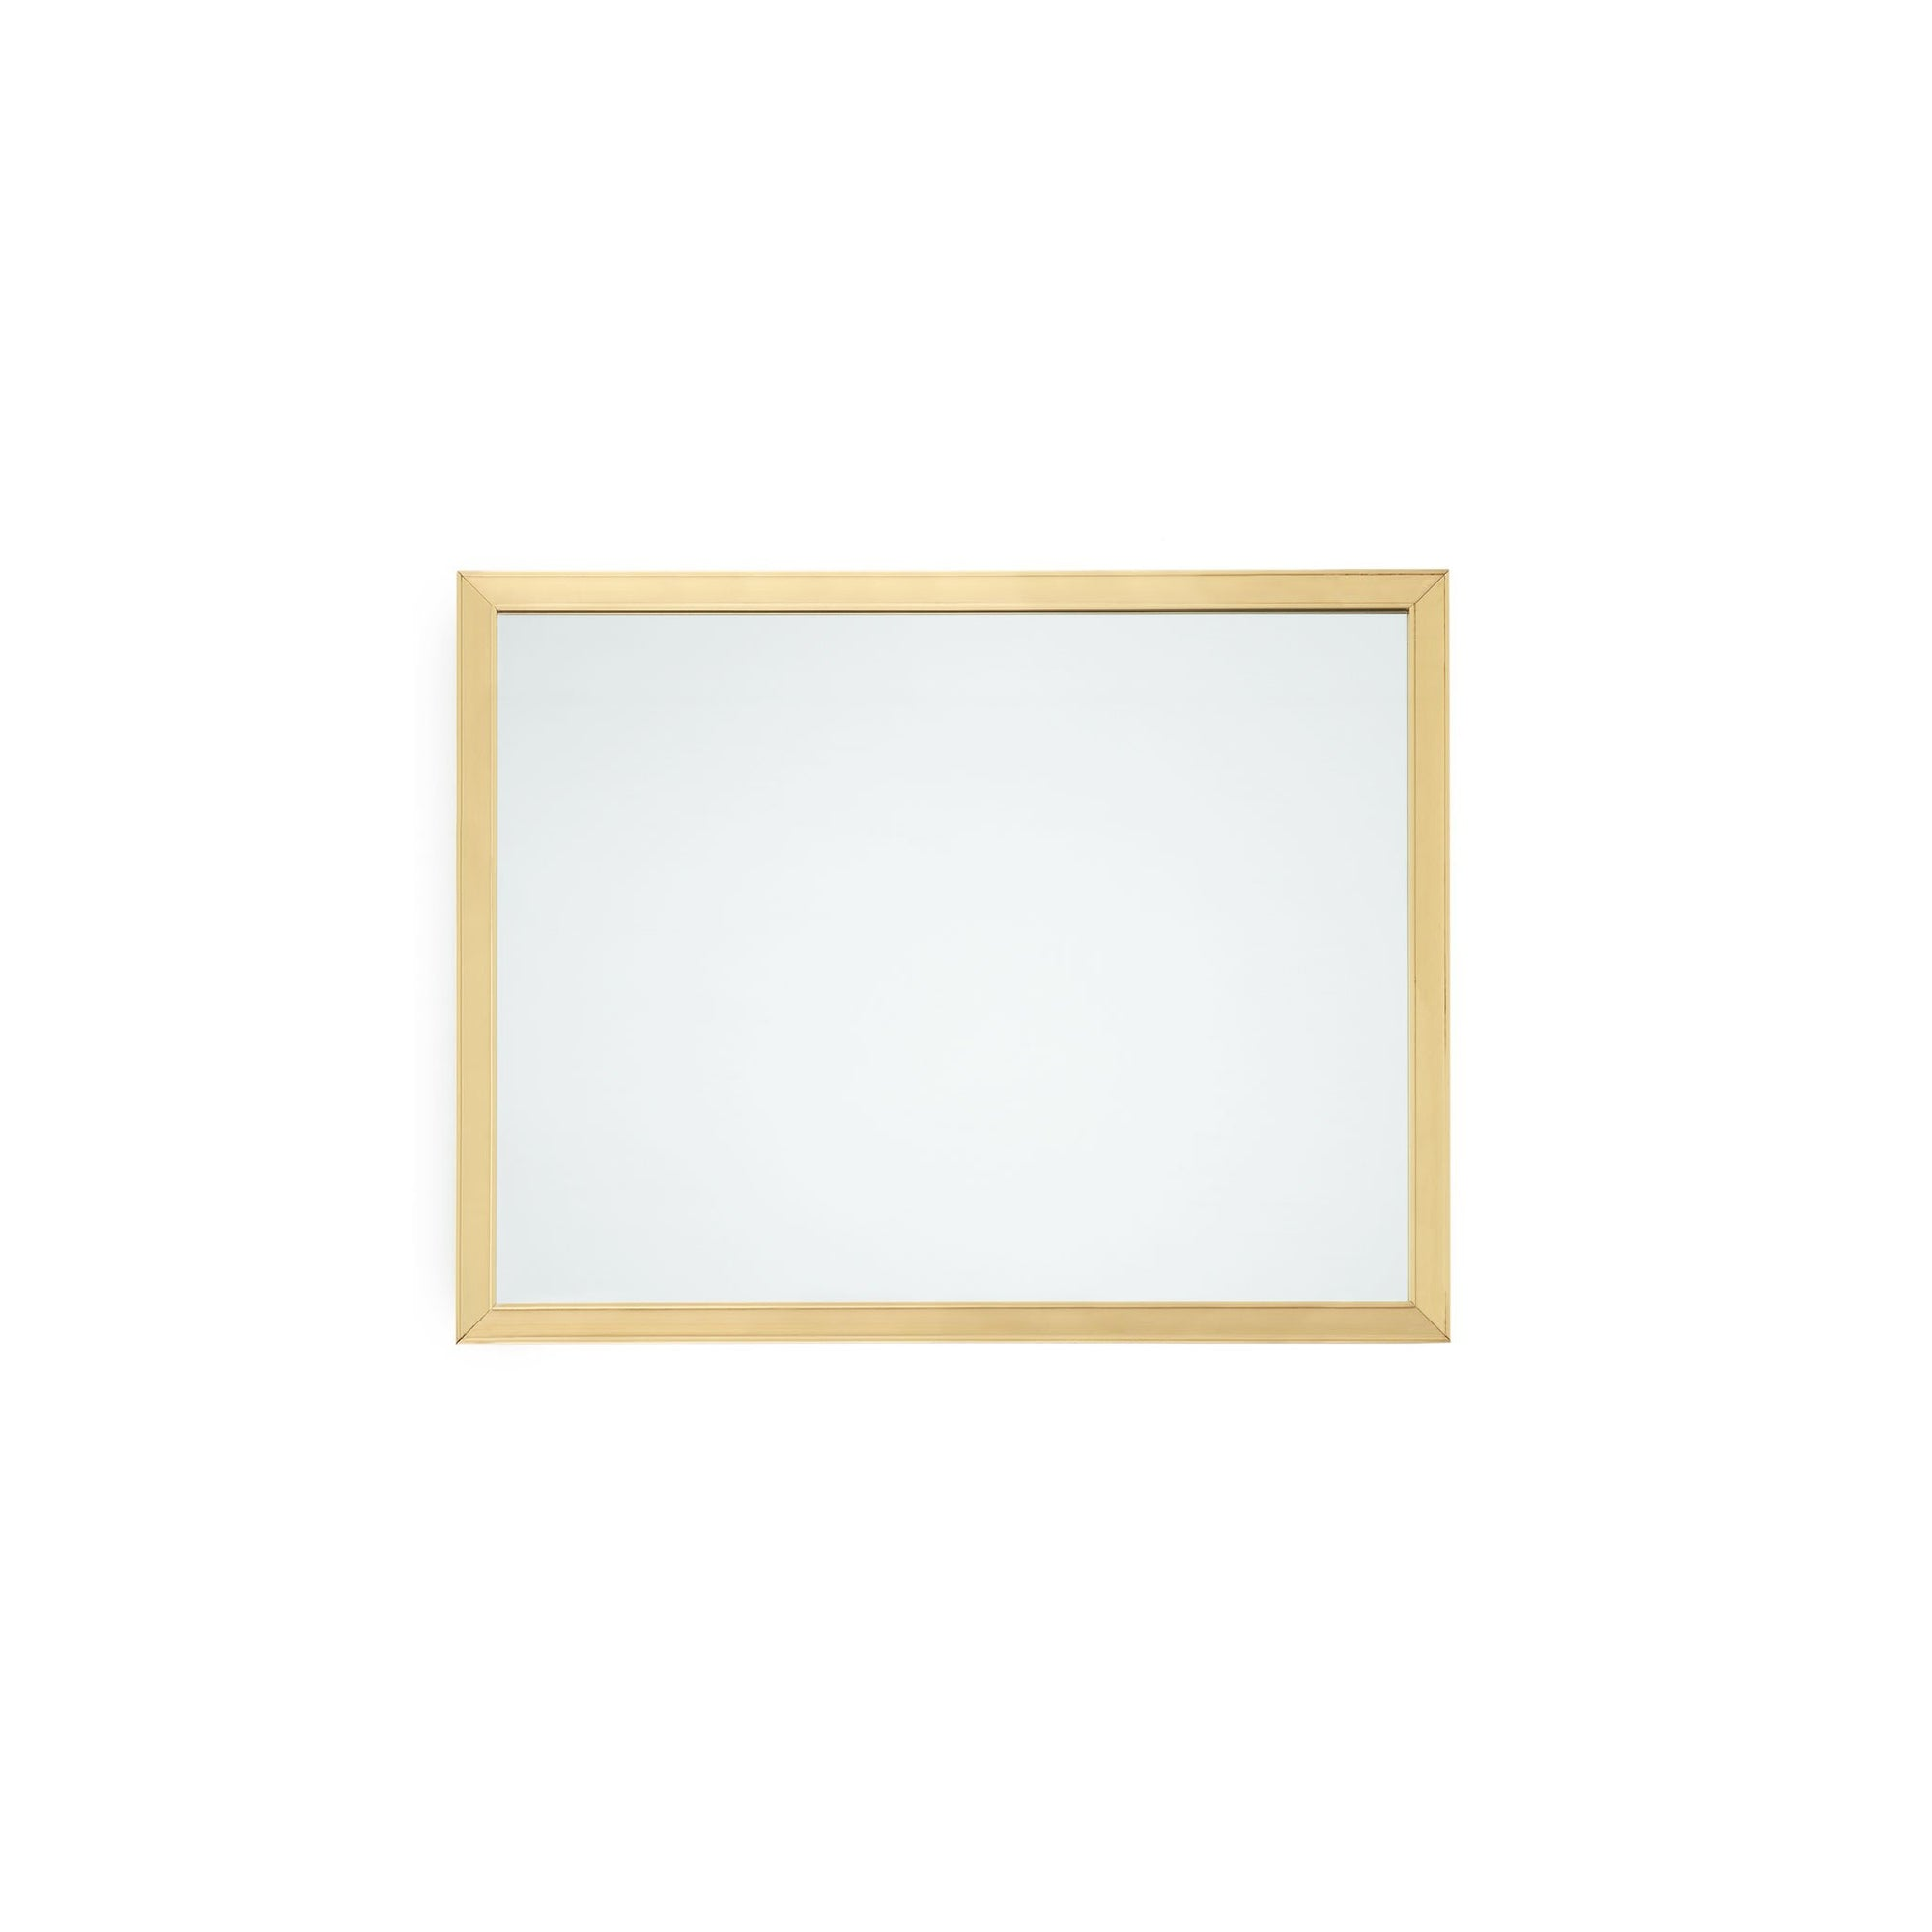 4260M21-GP Sherle Wagner International Contemporary Mirror in Gold Plate metal finish